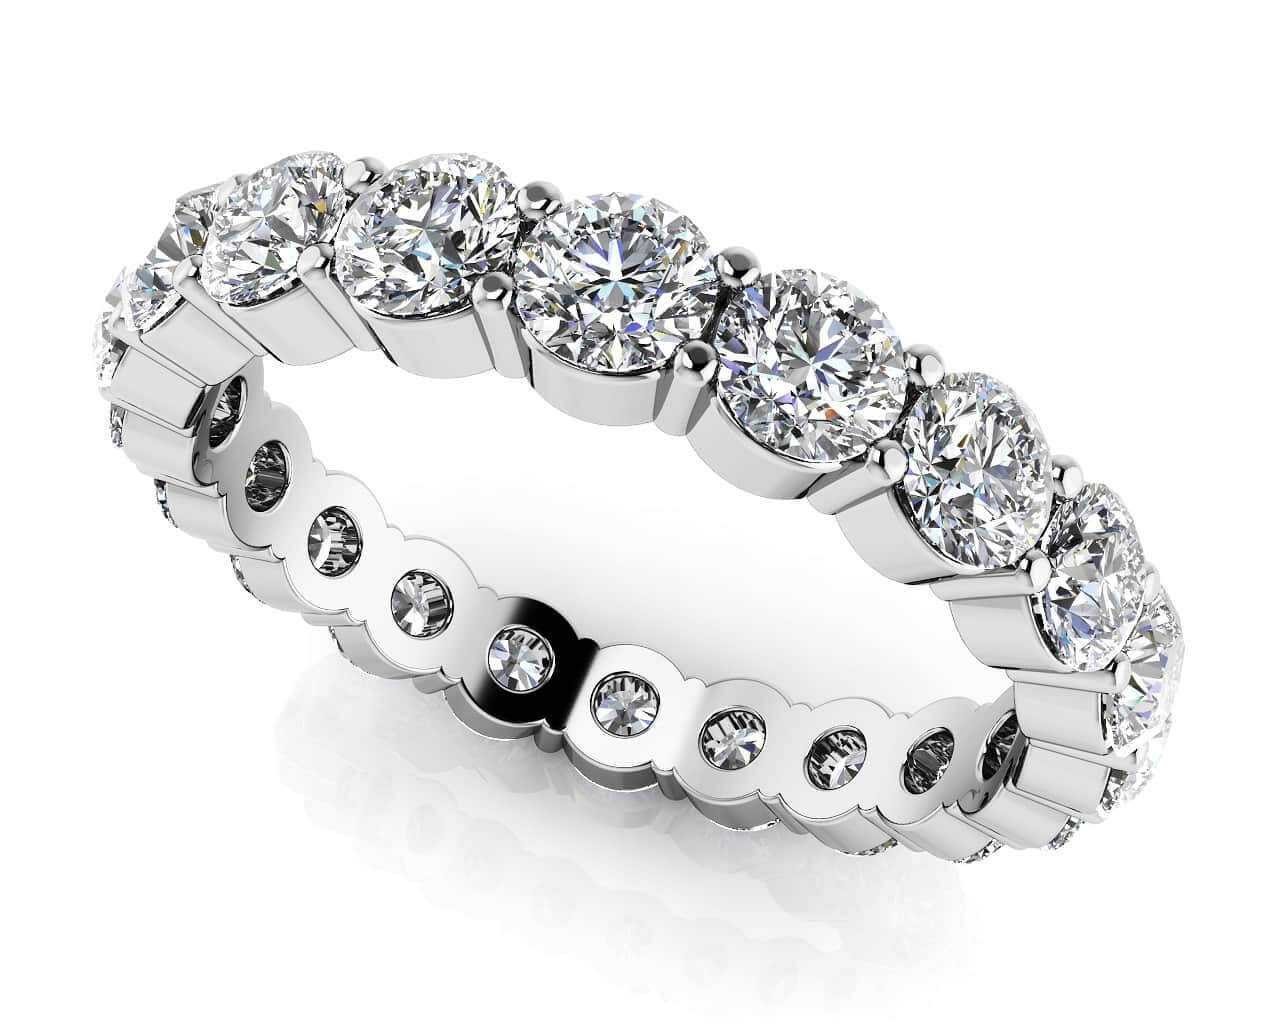 amelia engagement carat band ring bands context webb p mappin weight rings with and total diamond